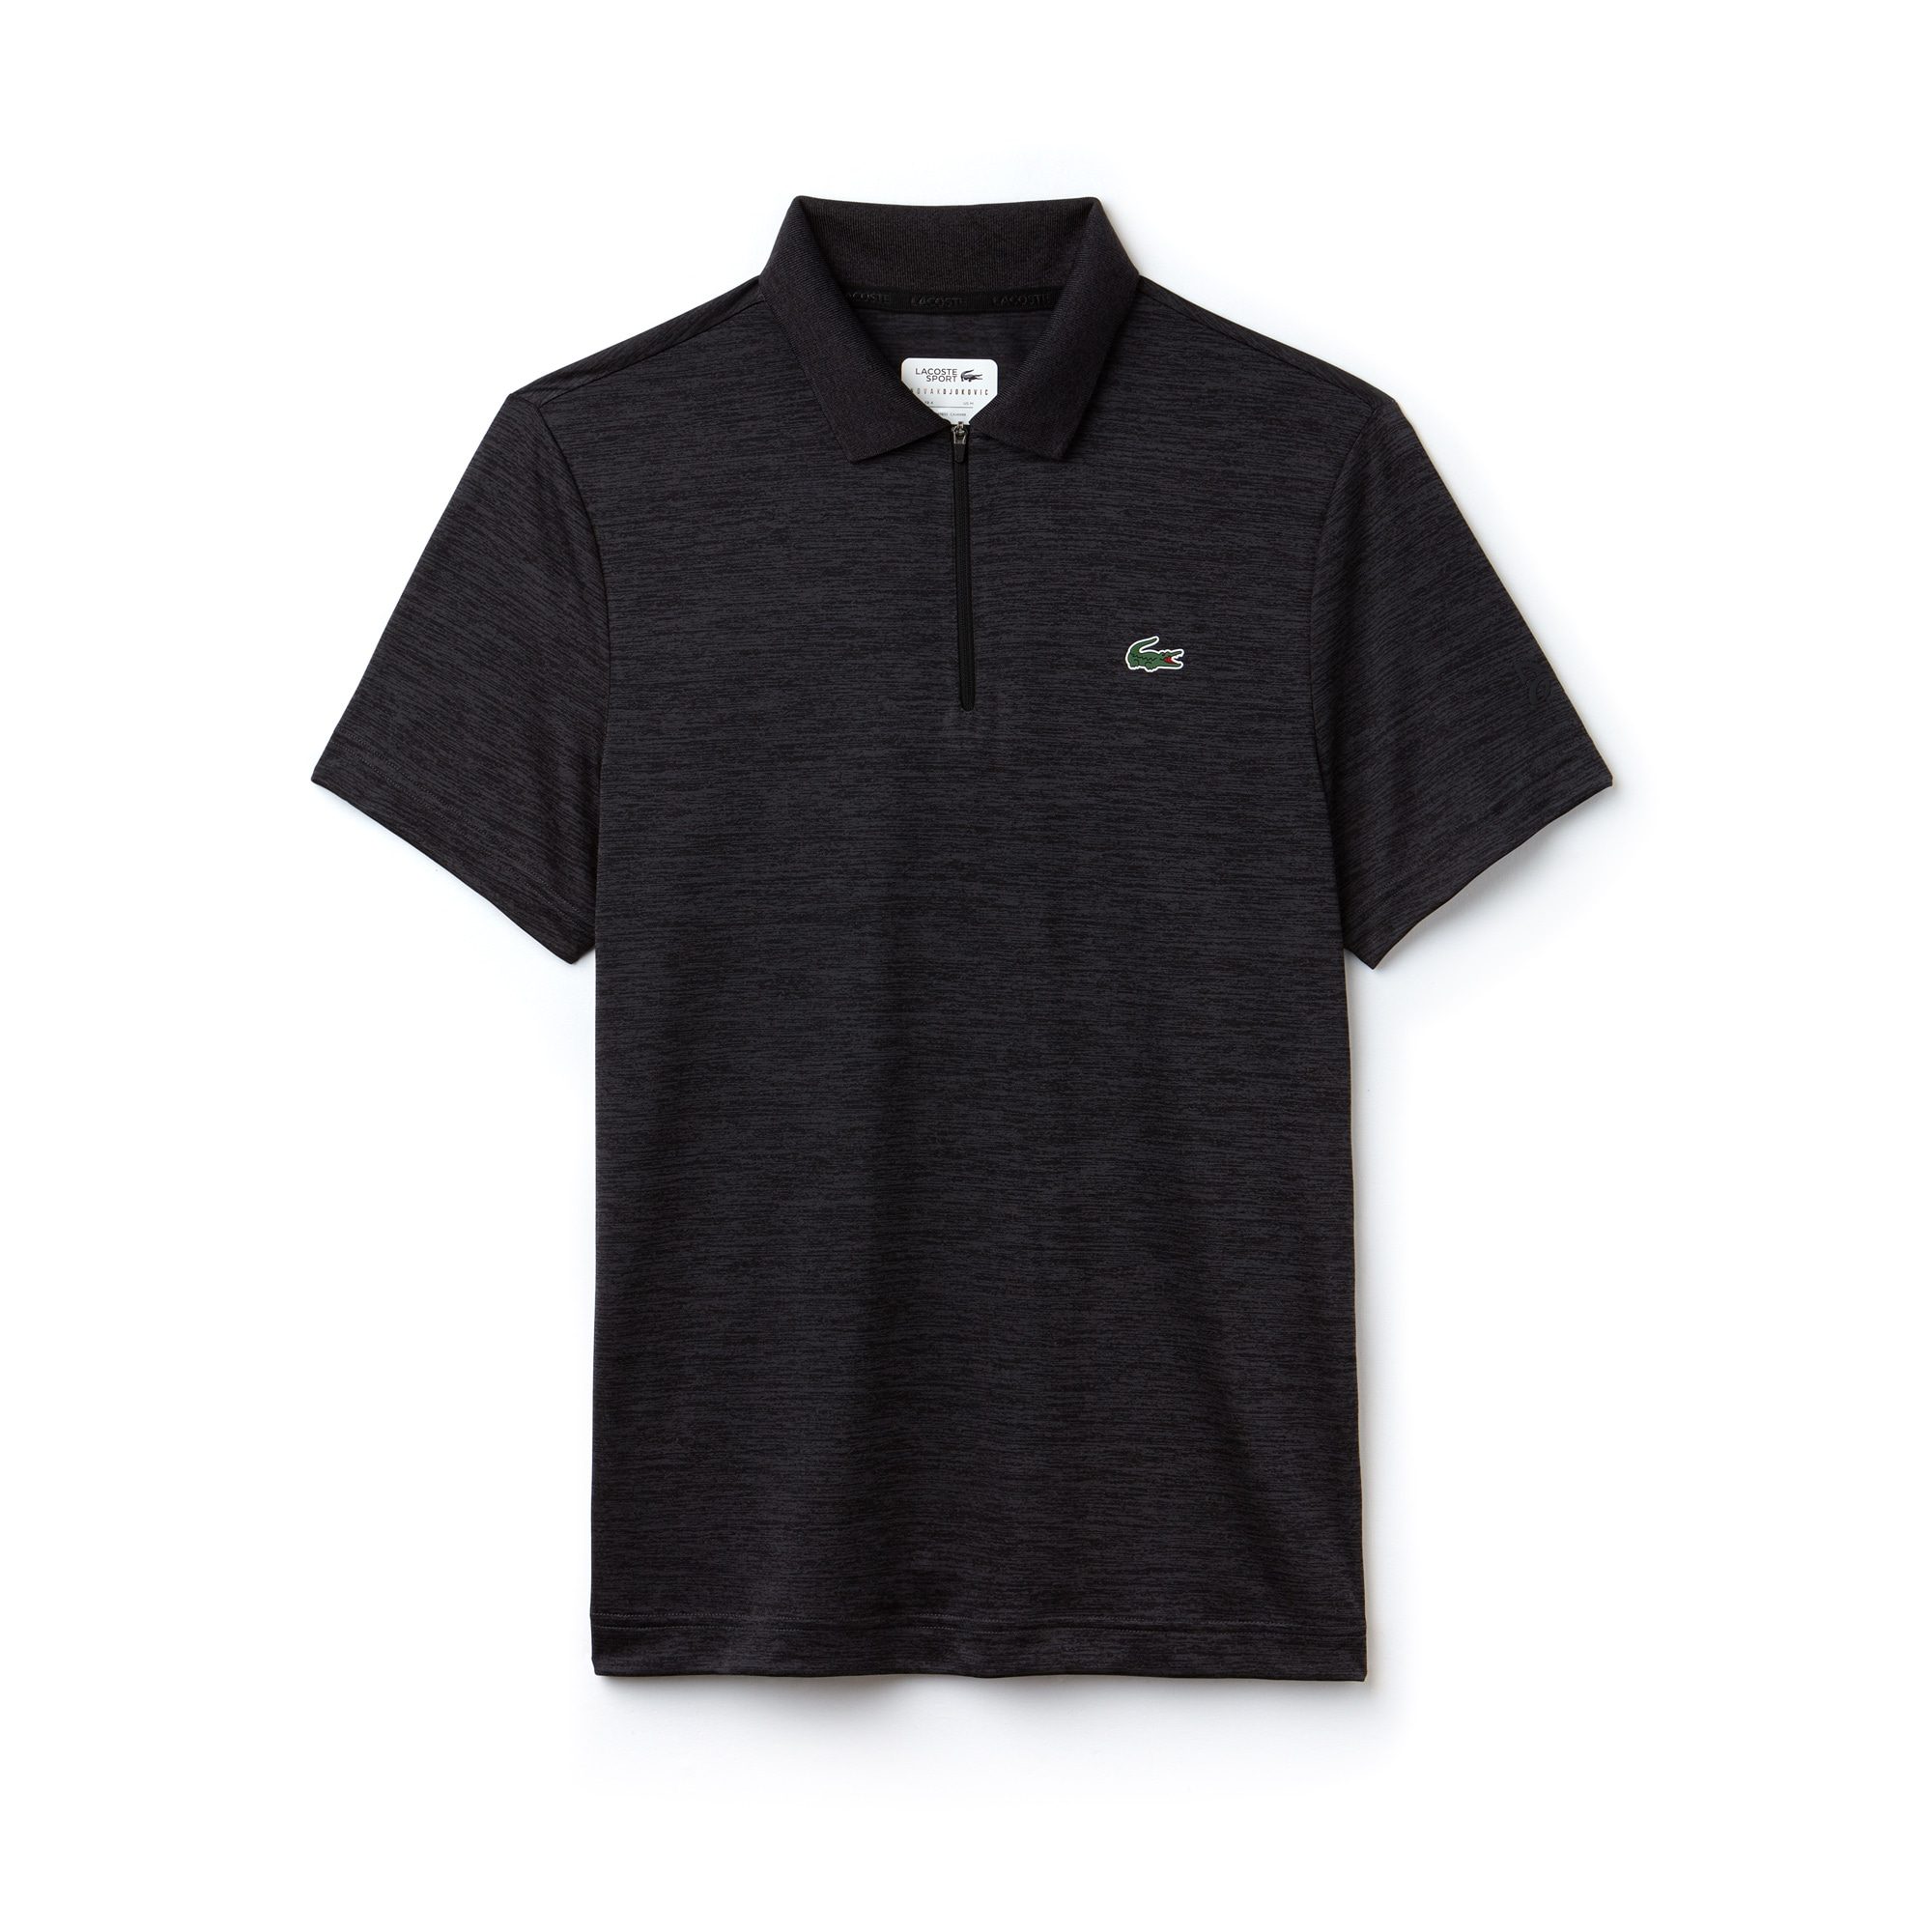 Men's SPORT Flecked Technical Polo - Novak Djokovic Collection